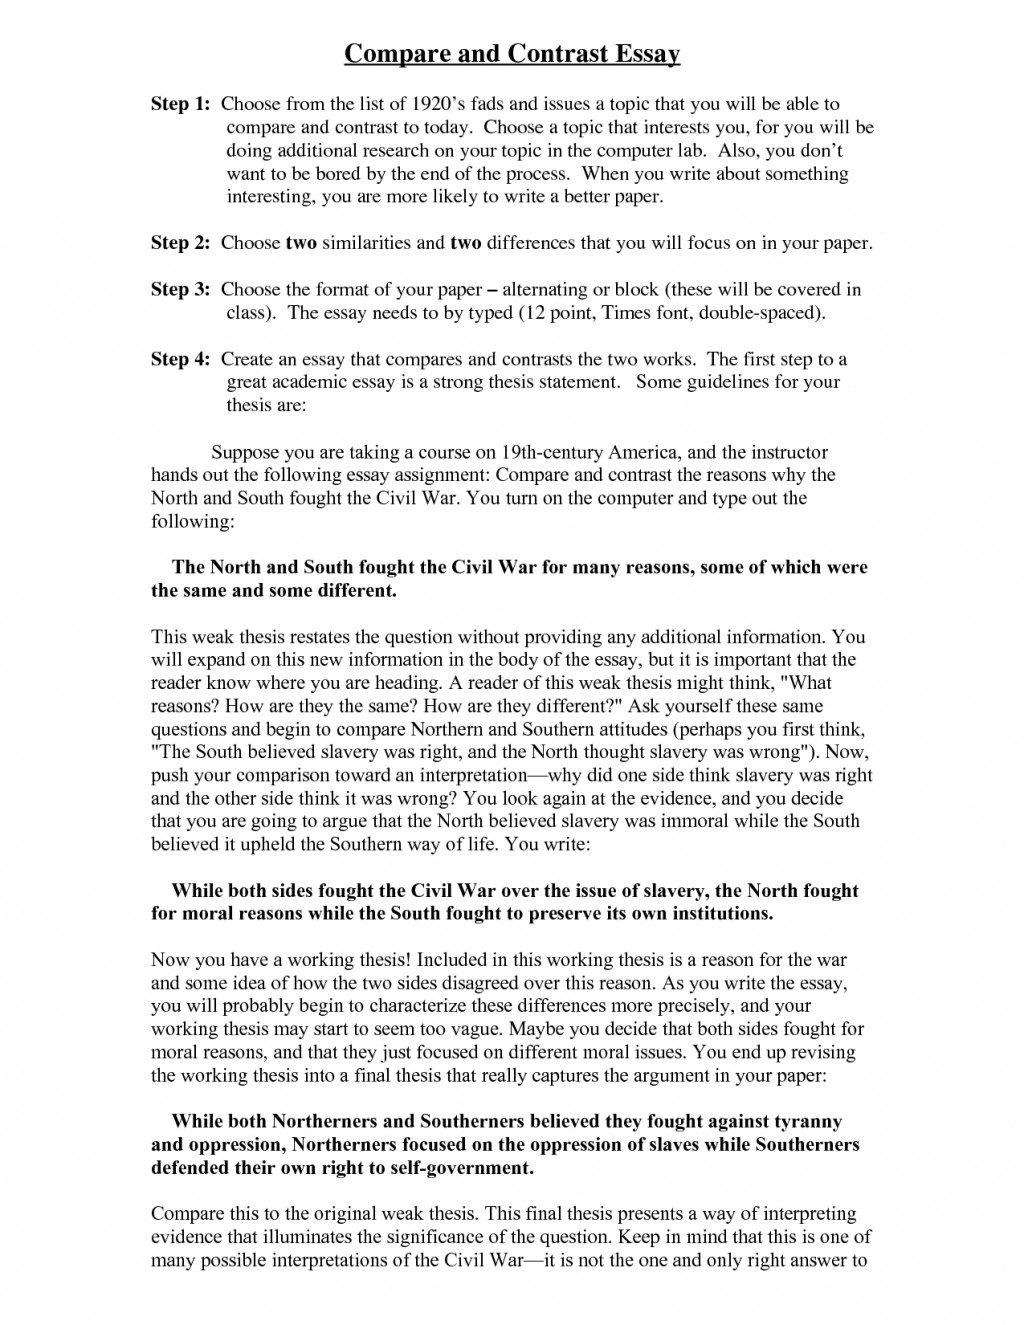 004 Comparisonssay Topic Compare And Contrastxample Mla Format Art Thesis Custom Resume Ghostwriting Site Best Contrast Essays Essay Rubric Elementary Topics Toefl 6th Grade Large